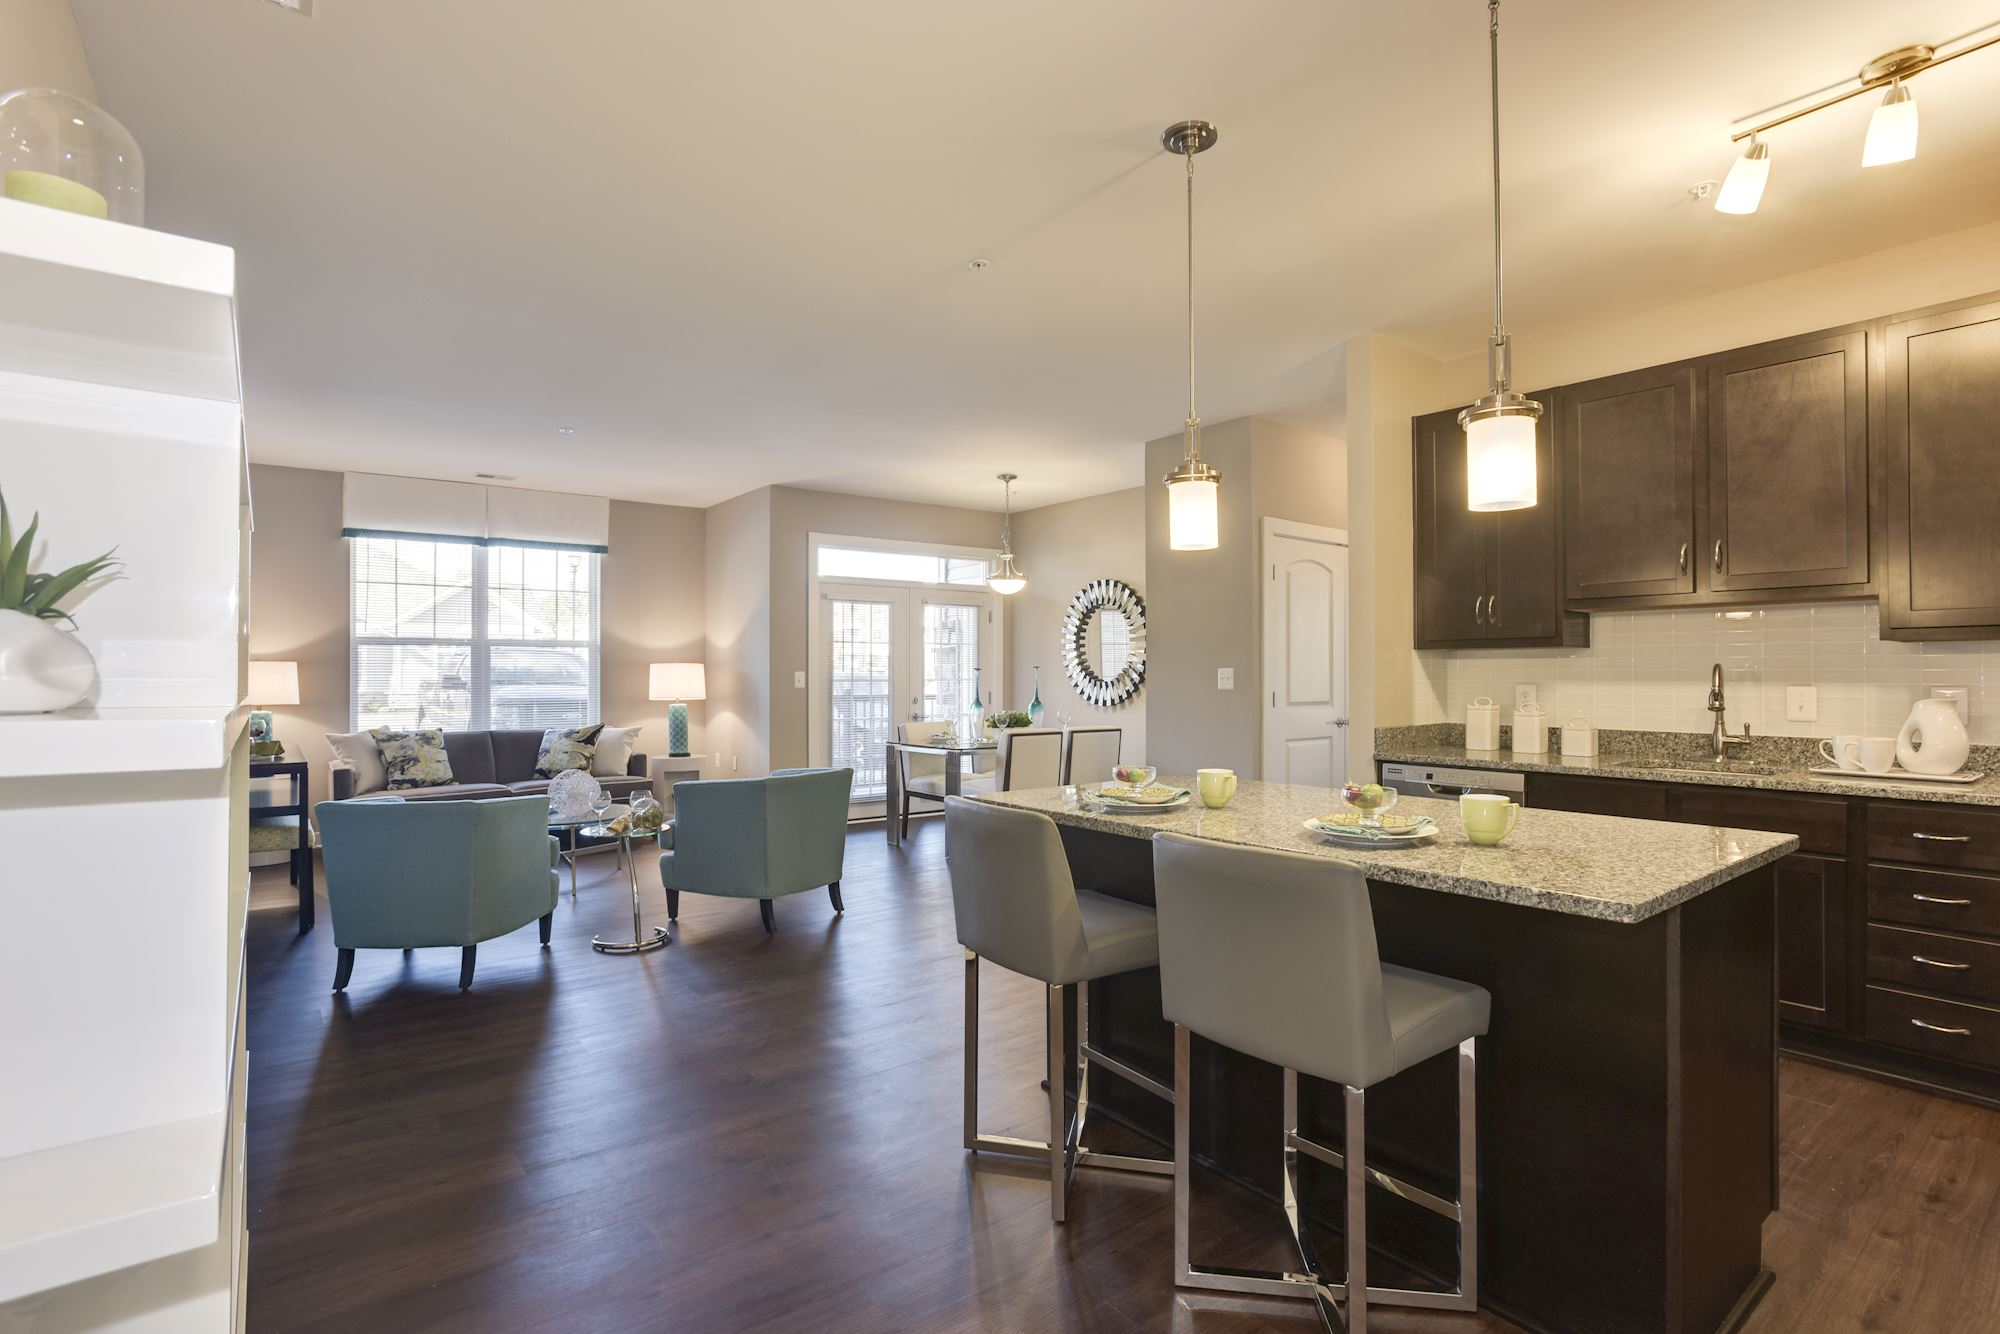 Avanti Luxury Apartments in Bel Air, MD - Designer Kitchen